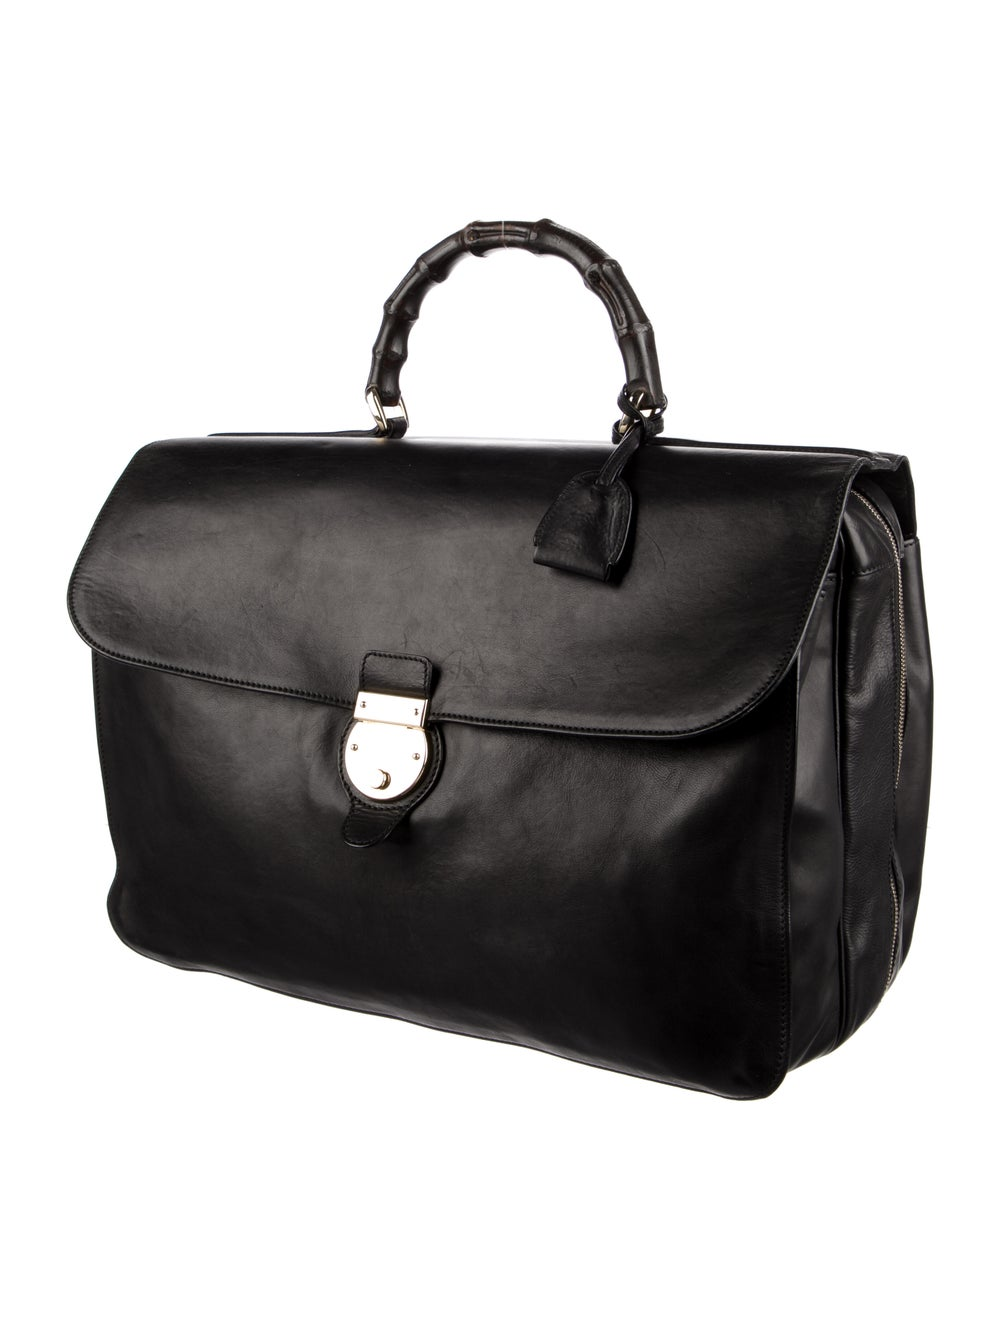 Gucci Bamboo Handle Soft Briefcase Black - image 3